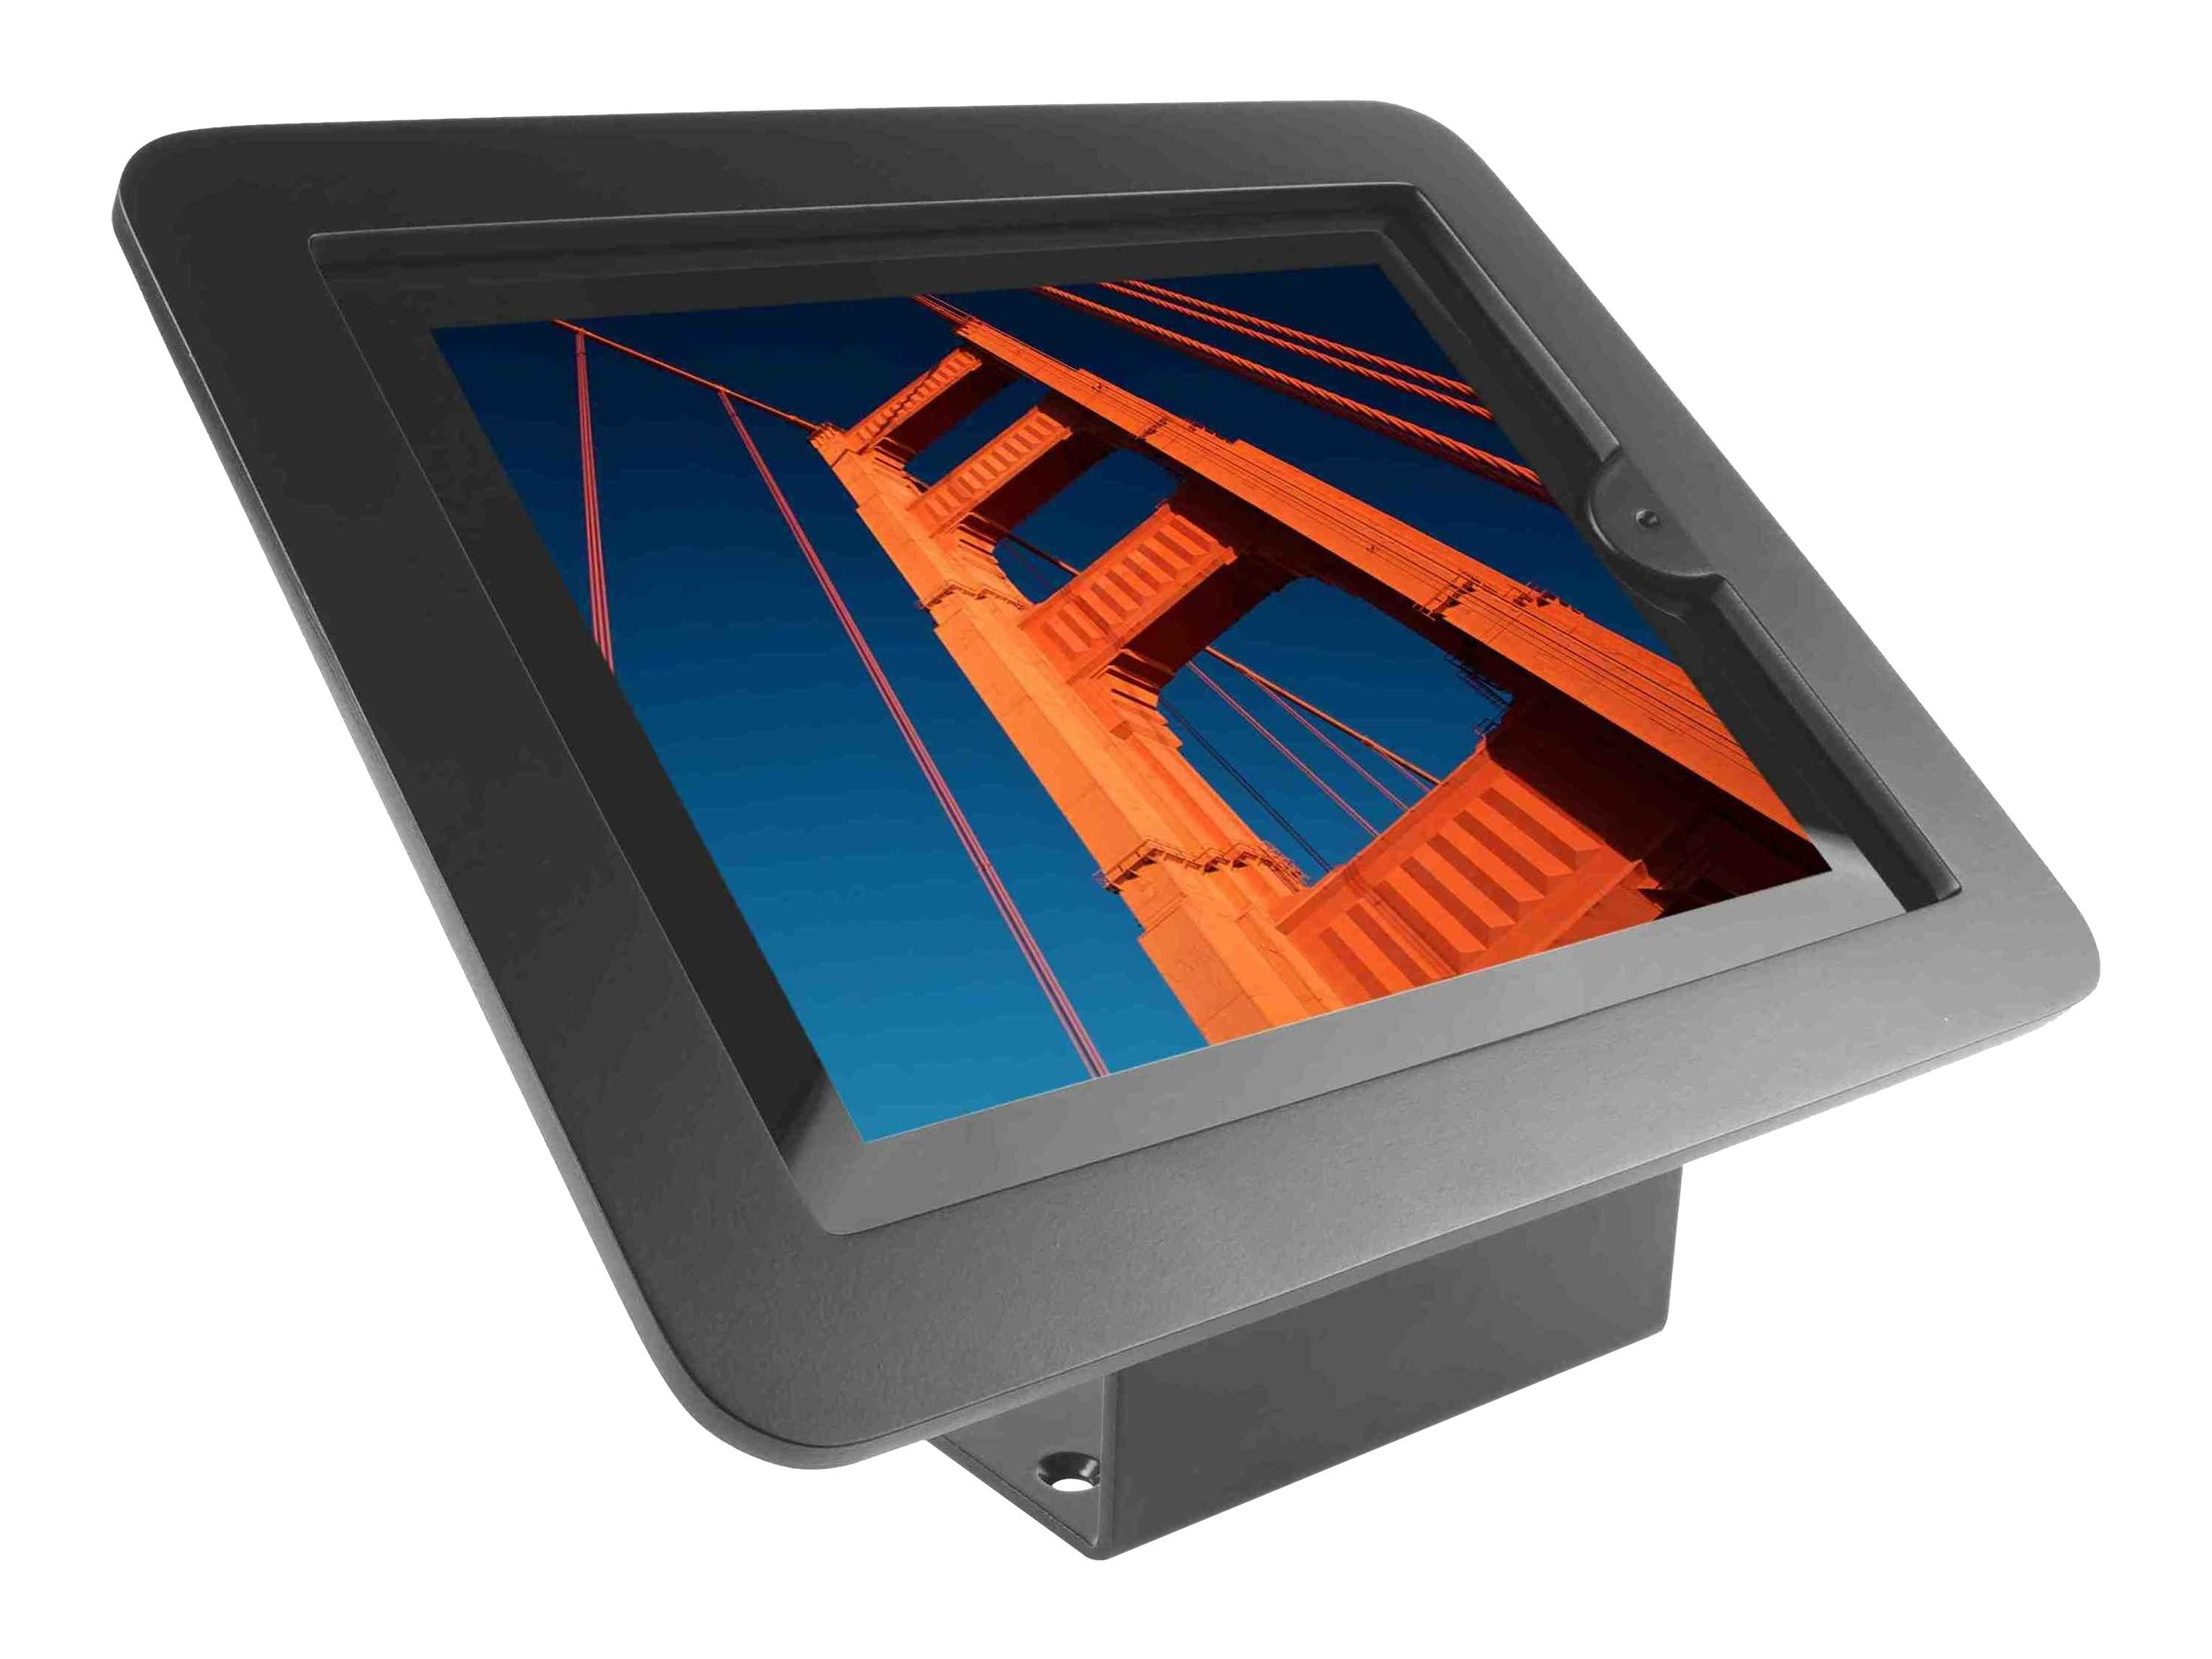 "Compulocks Executive 45° - iPad 9.7"" Wall Mount / Counter Top Kiosk - Black - Kit de montage (support de fixation, cadre professionnel) pour tablette - aluminium - noir - montable au plafond, montable sur bureau - pour Apple iPad (3ème génération); iPad 2; iPad Air; iPad Air 2; iPad with Retina display"